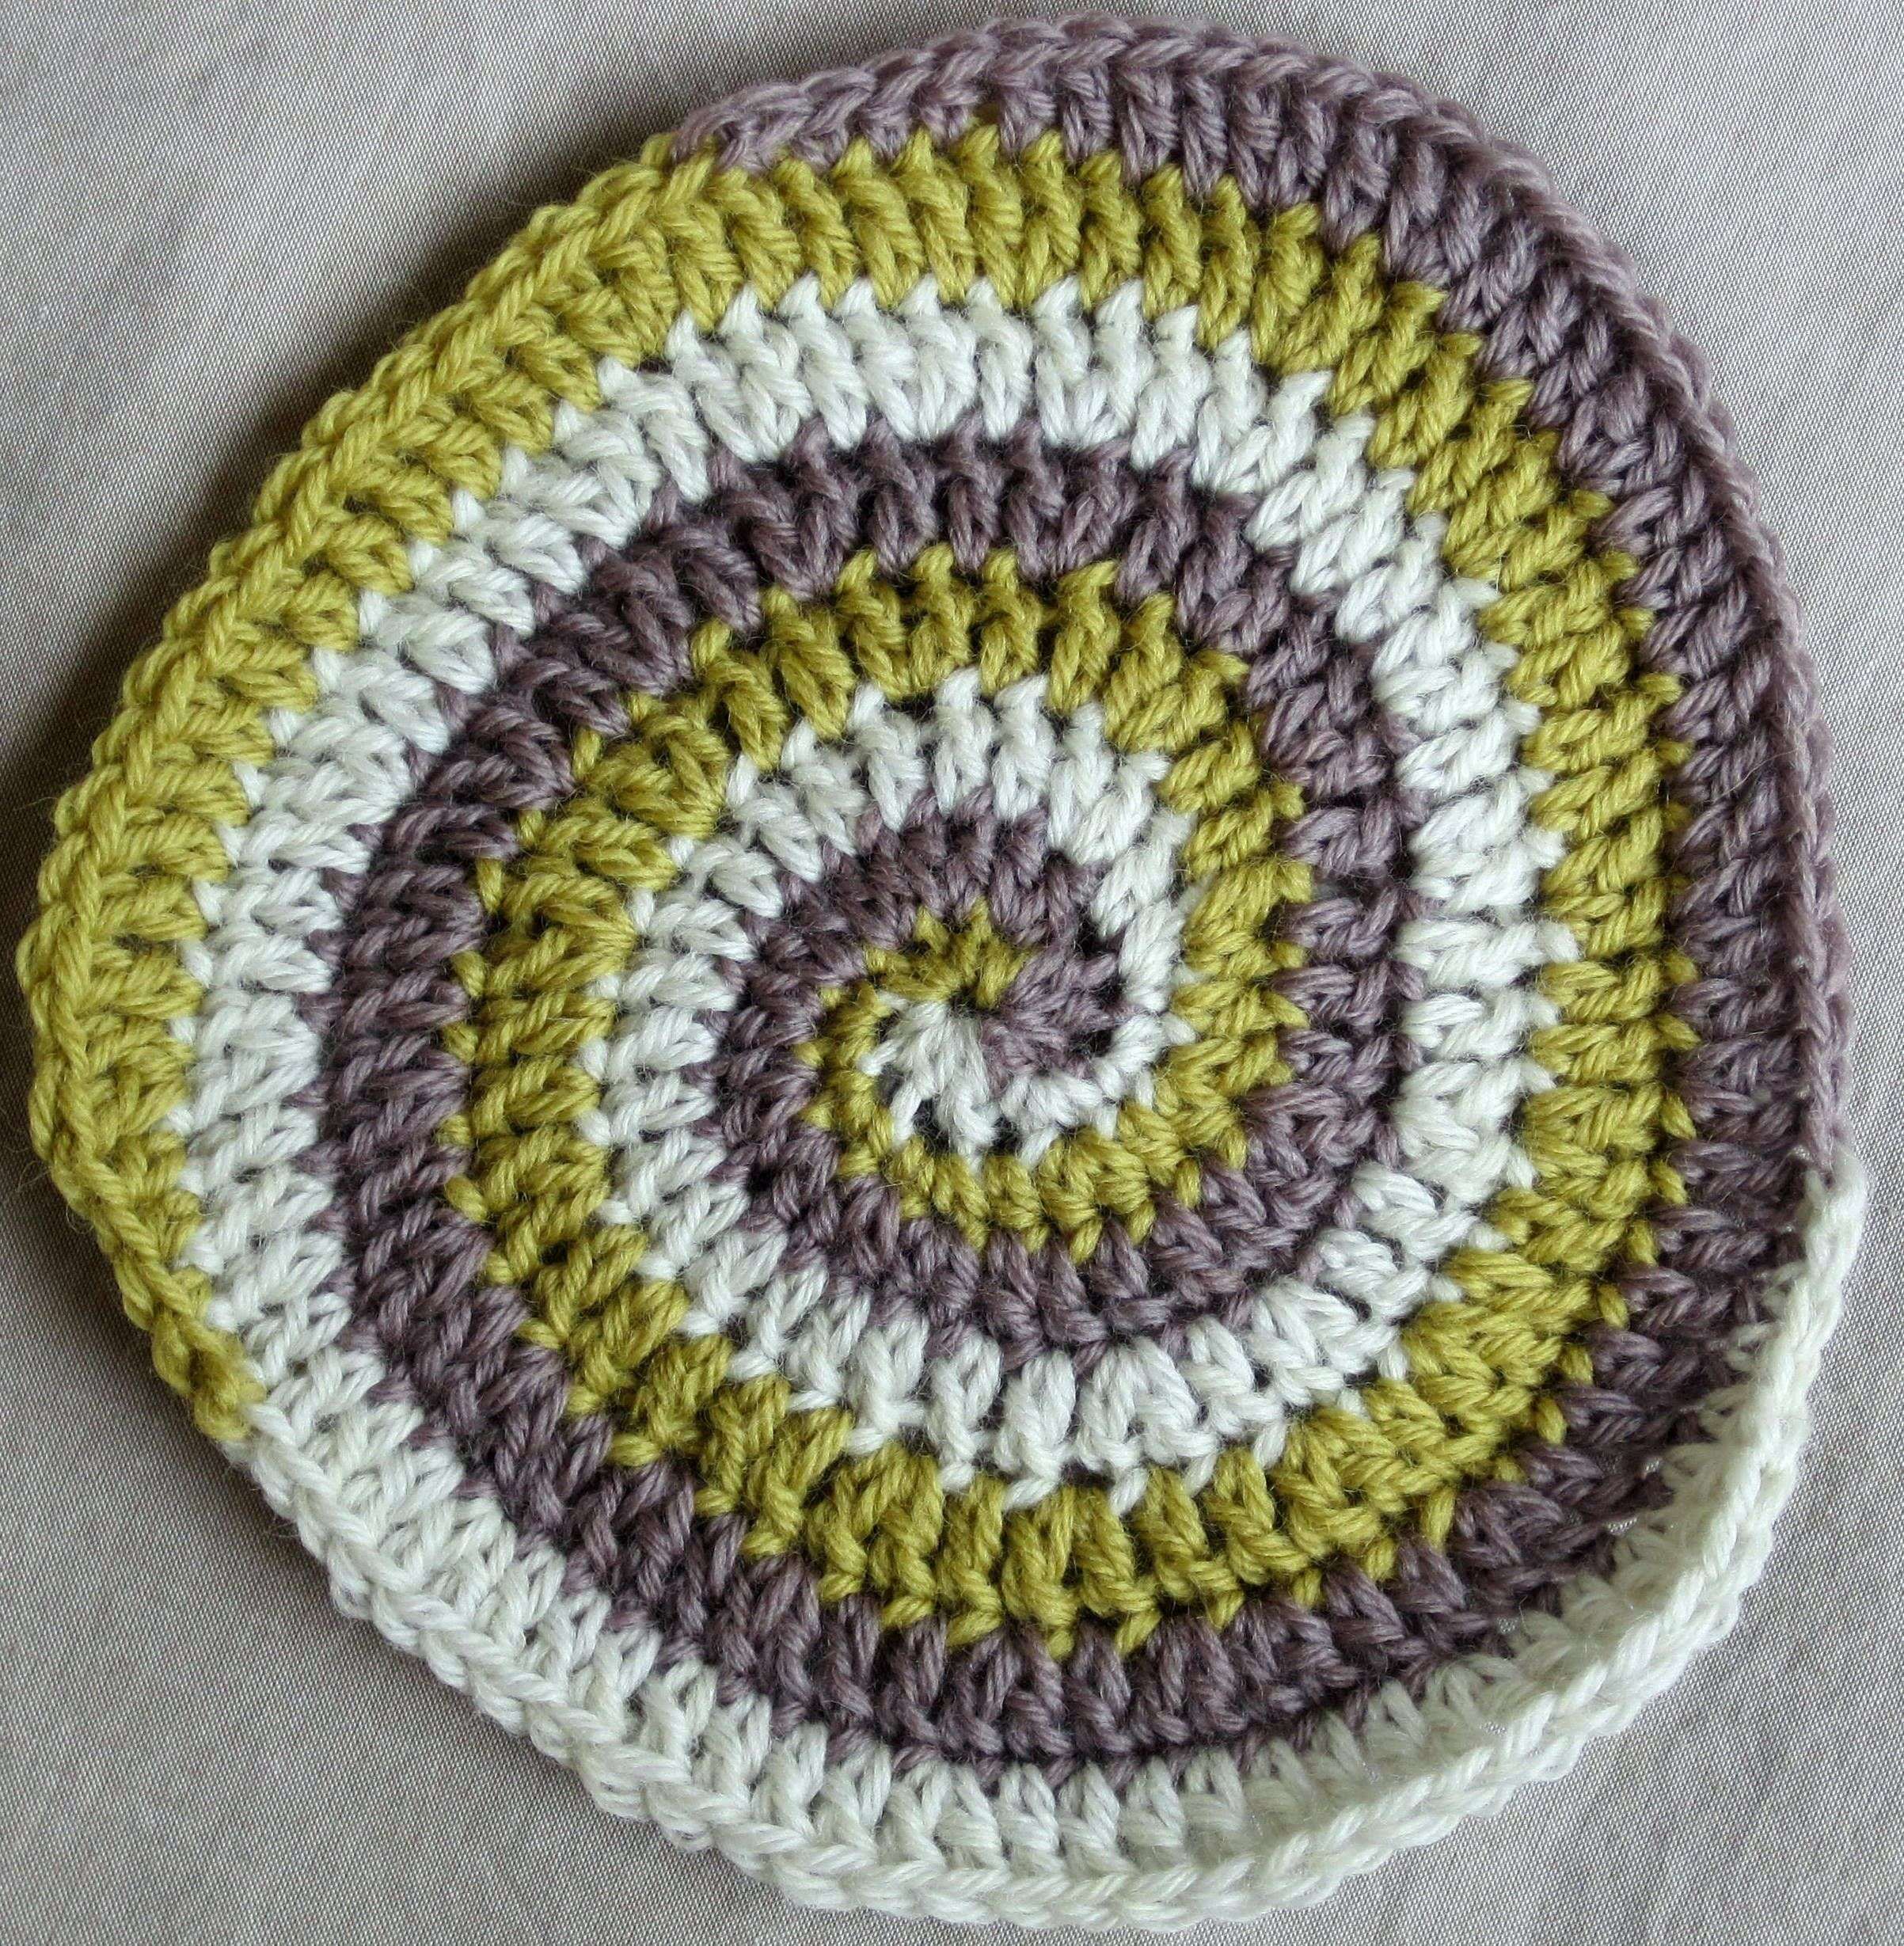 Spiral crochet bag pattern strand over fist crochet sweets spiral crochet bag pattern strand over fist bankloansurffo Images